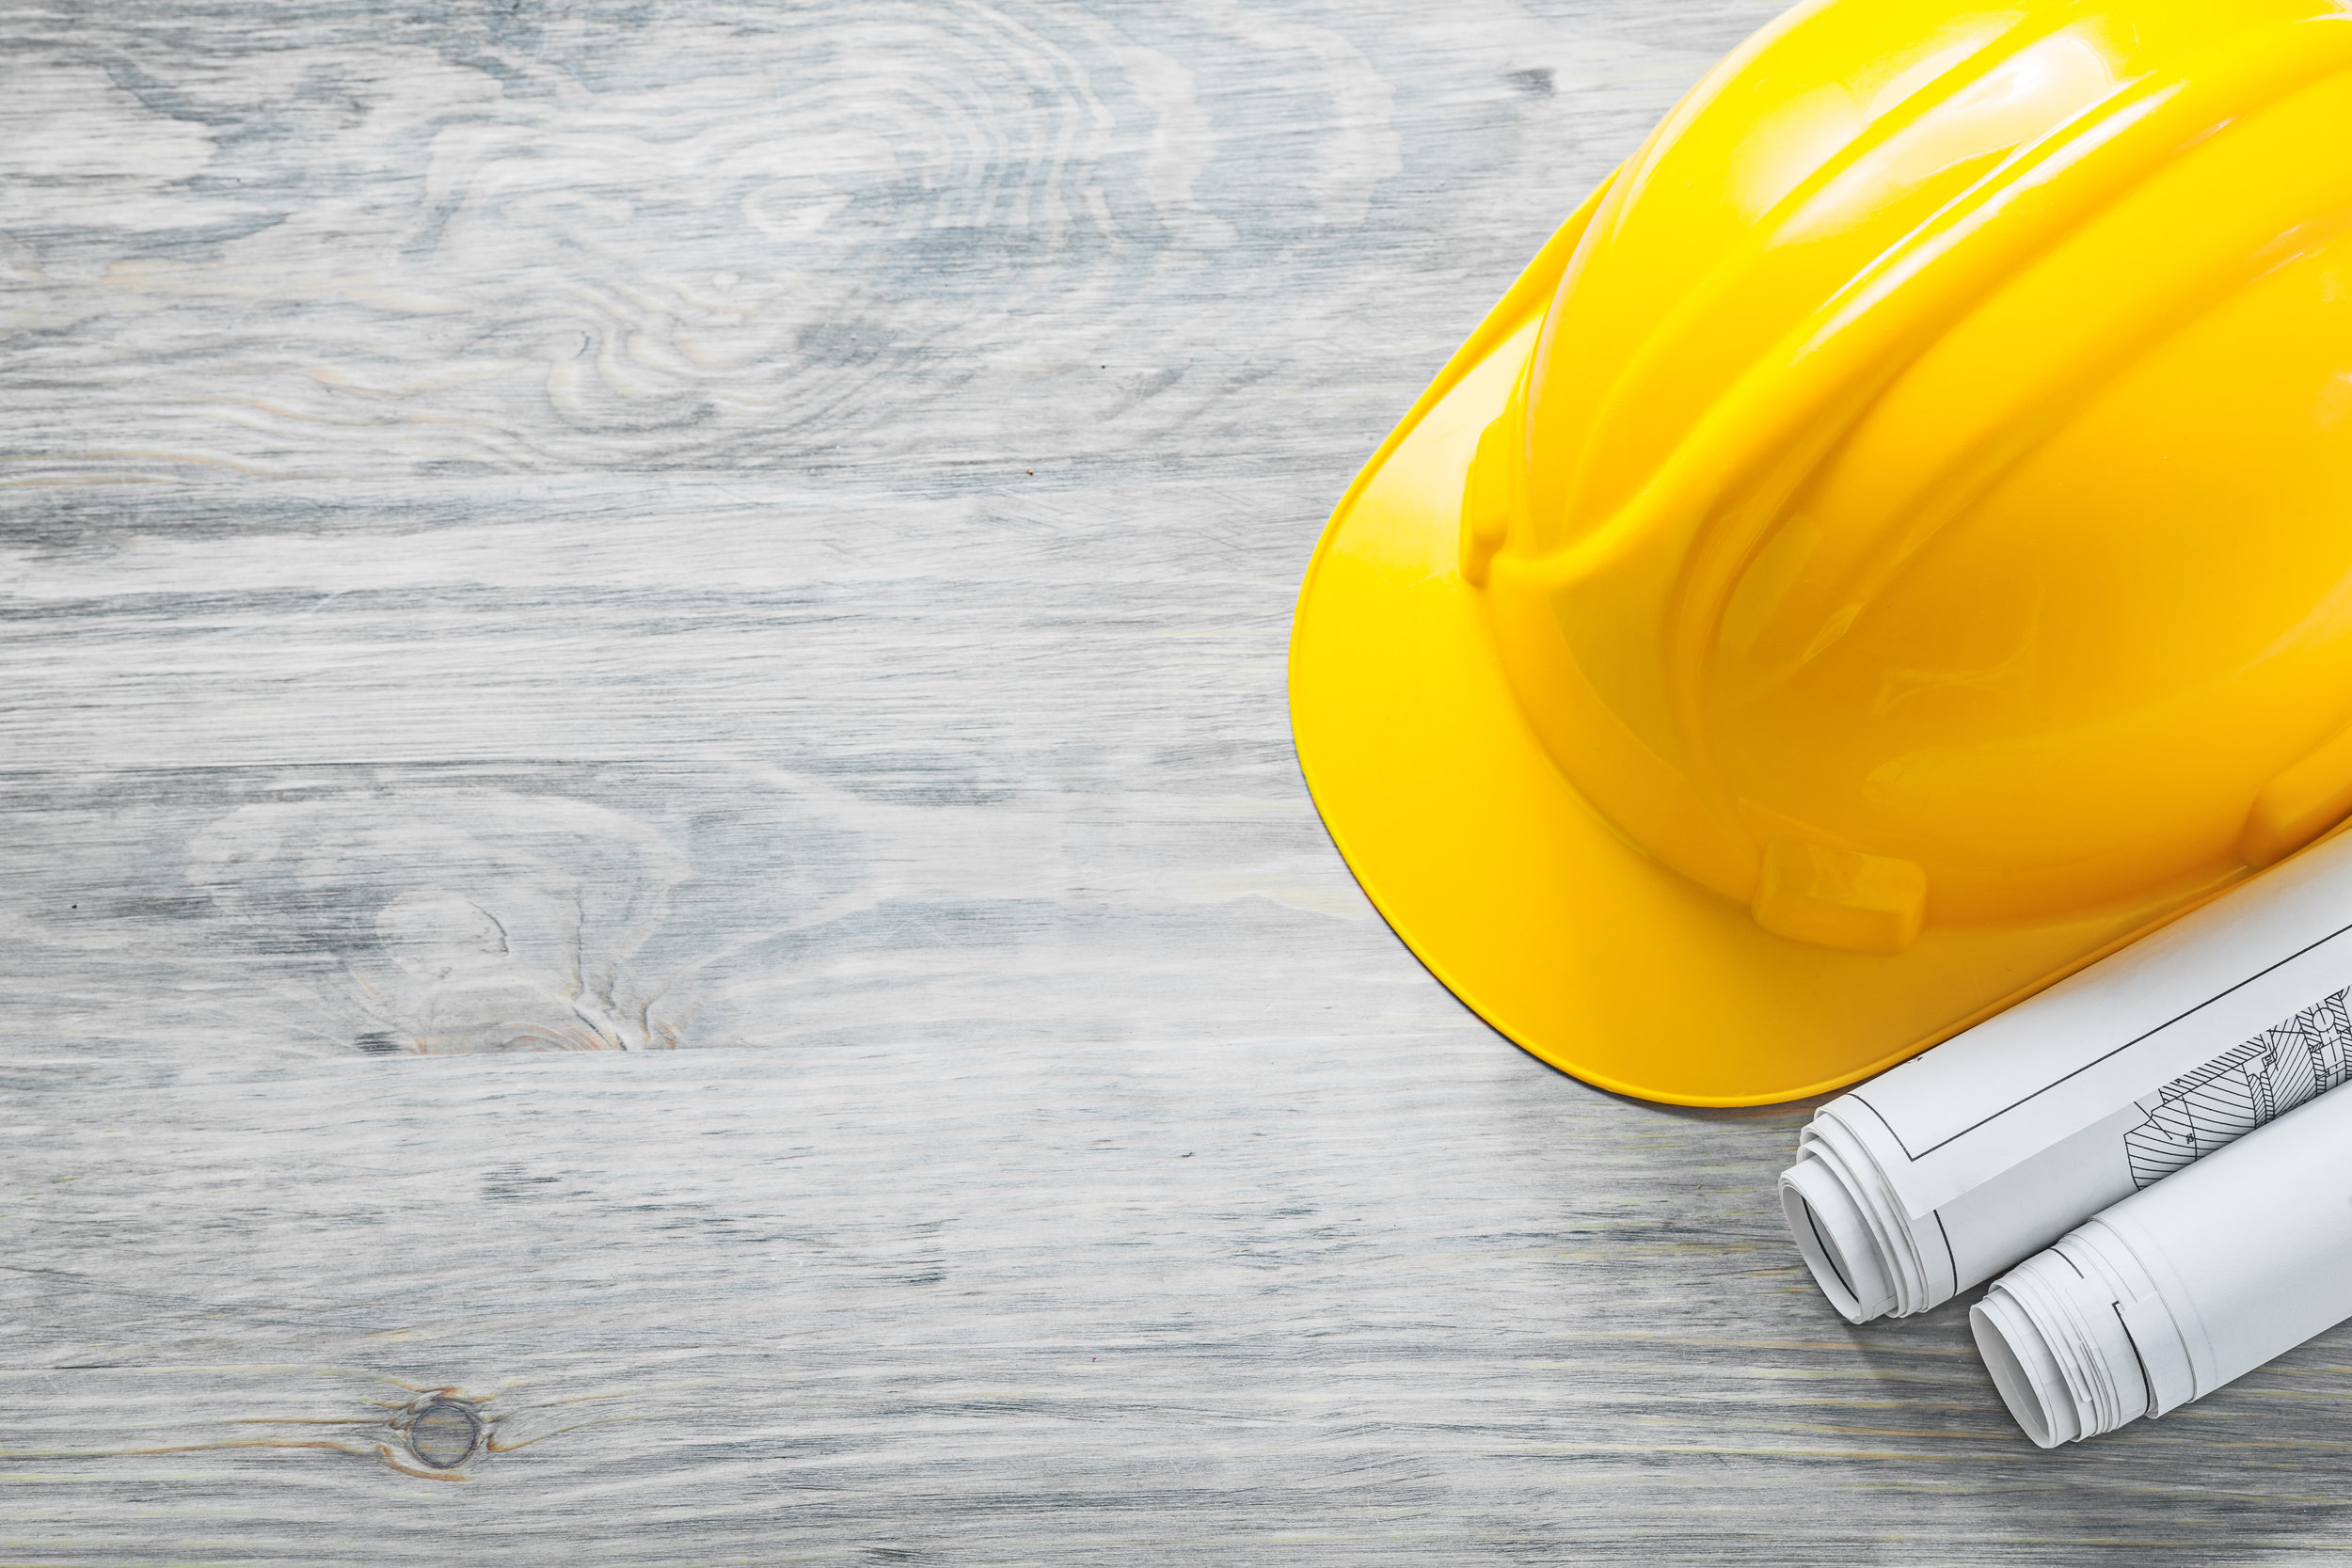 - Building Jobs is the leading voice of construction and design industry at the Colorado state Capitol—To learn more about BJ4C priorities please contact the member organization which fits your industry below or contact us here.